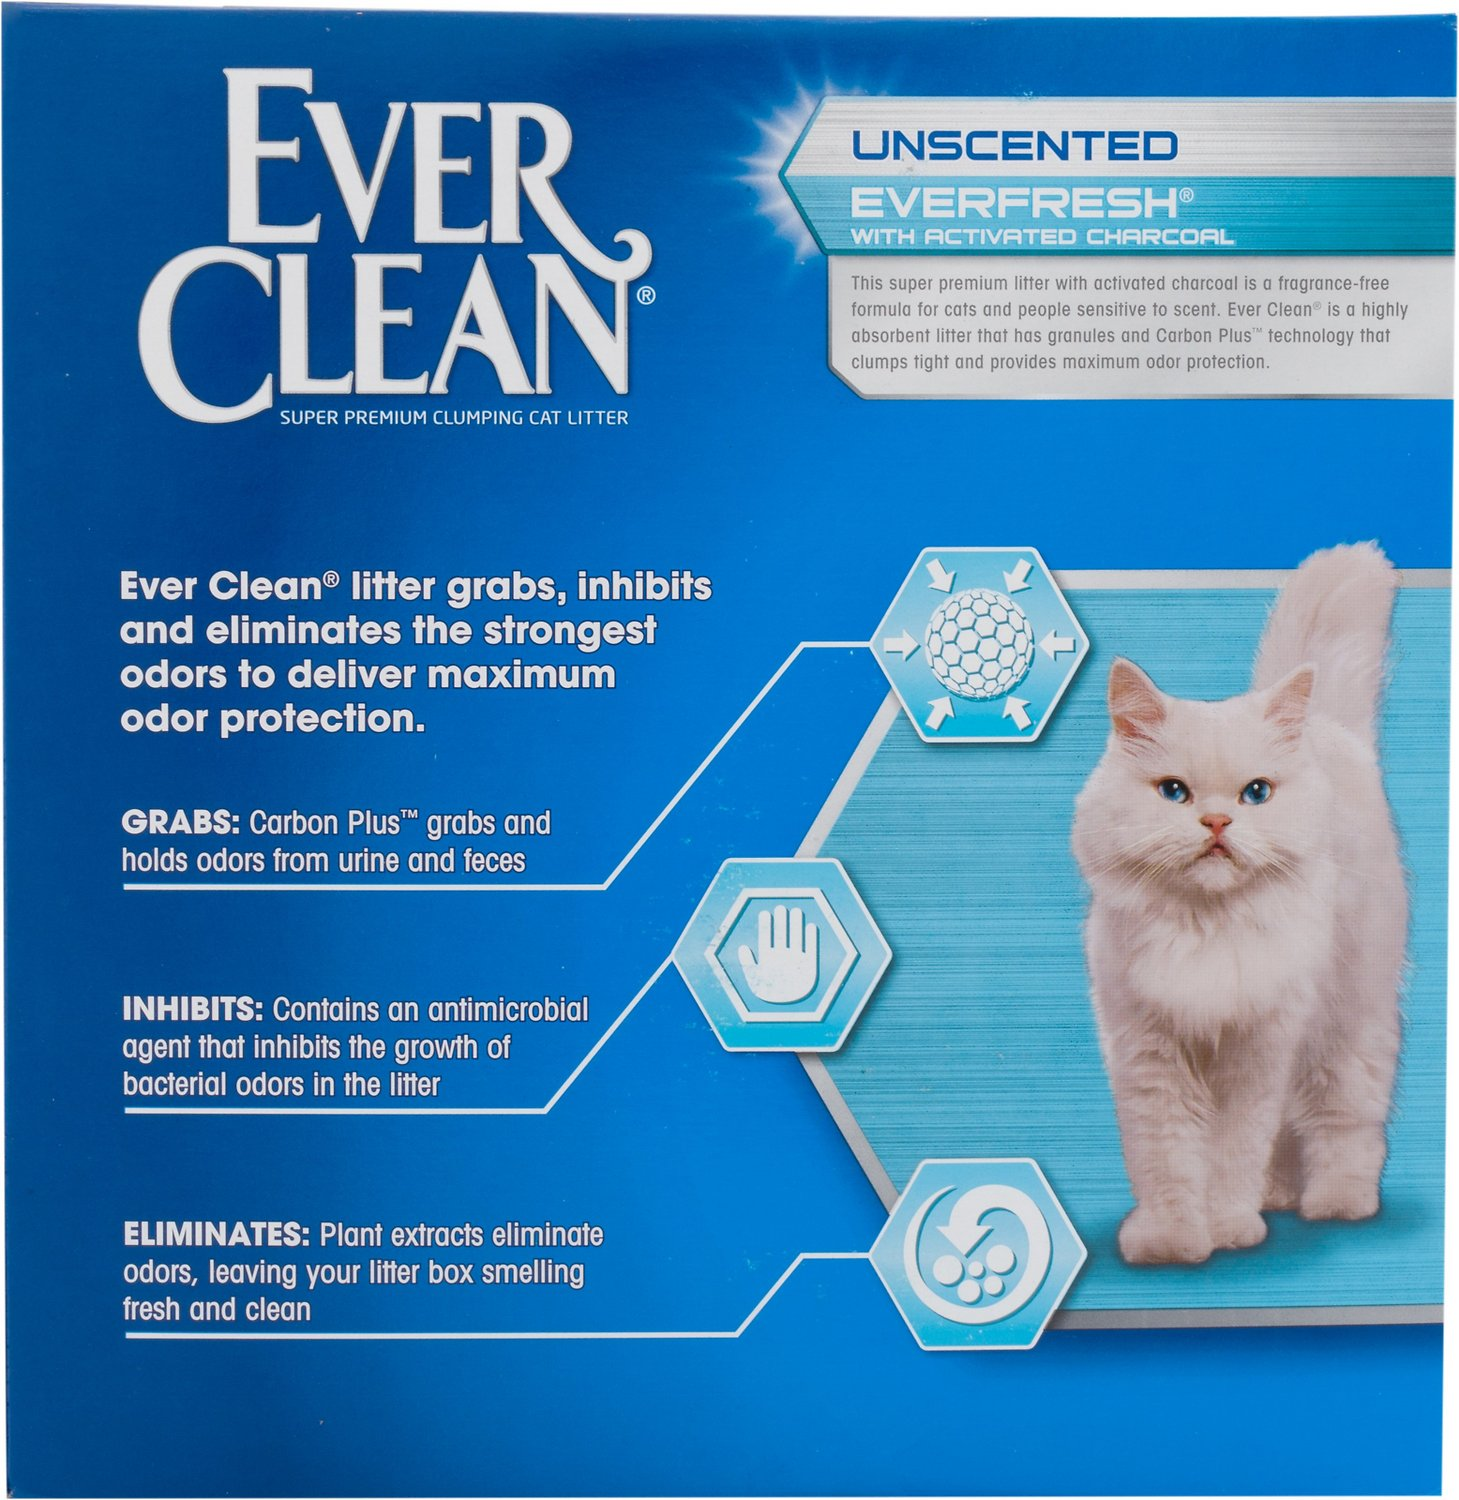 Ever Clean Everfresh With Activated Charcoal Unscented. Security Guide To Network Security Fundamentals. Chandler Divorce Attorney Where Do I Live Map. Wood Chipping Equipment Est3 Fire Alarm Panel. Postage Machine Companies Yale University Mba. Online Social Media Marketing Courses. Double Hung Windows Online House Loans Rates. Cloud Web Hosting Services Mouries Auto Sales. Computer Software Support Cds Office Supplies